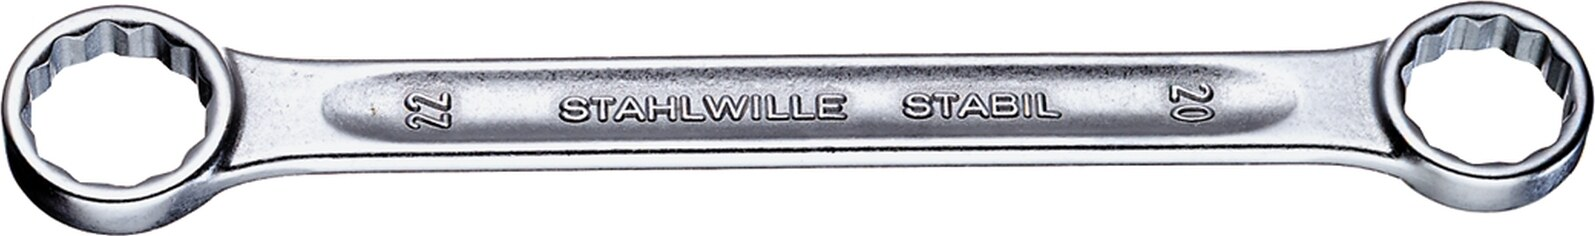 Stahlwille DOUBLE ENDED RING SPANNER 21 13 X 17